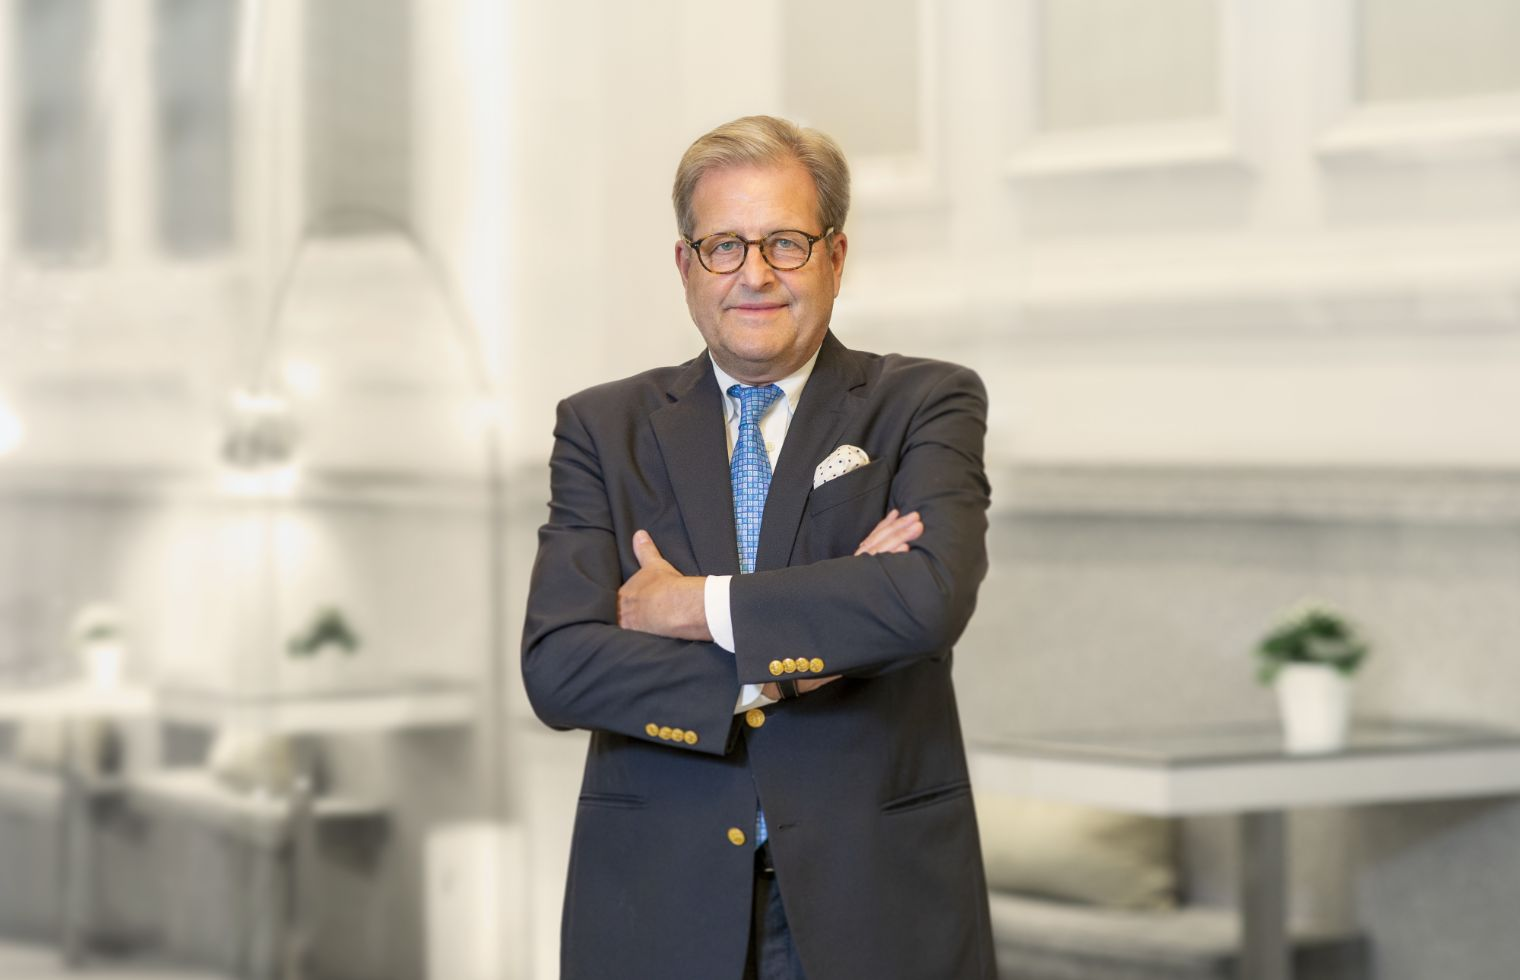 Stephen Brenninkmeijer message fro the chairperson of the supervisory board